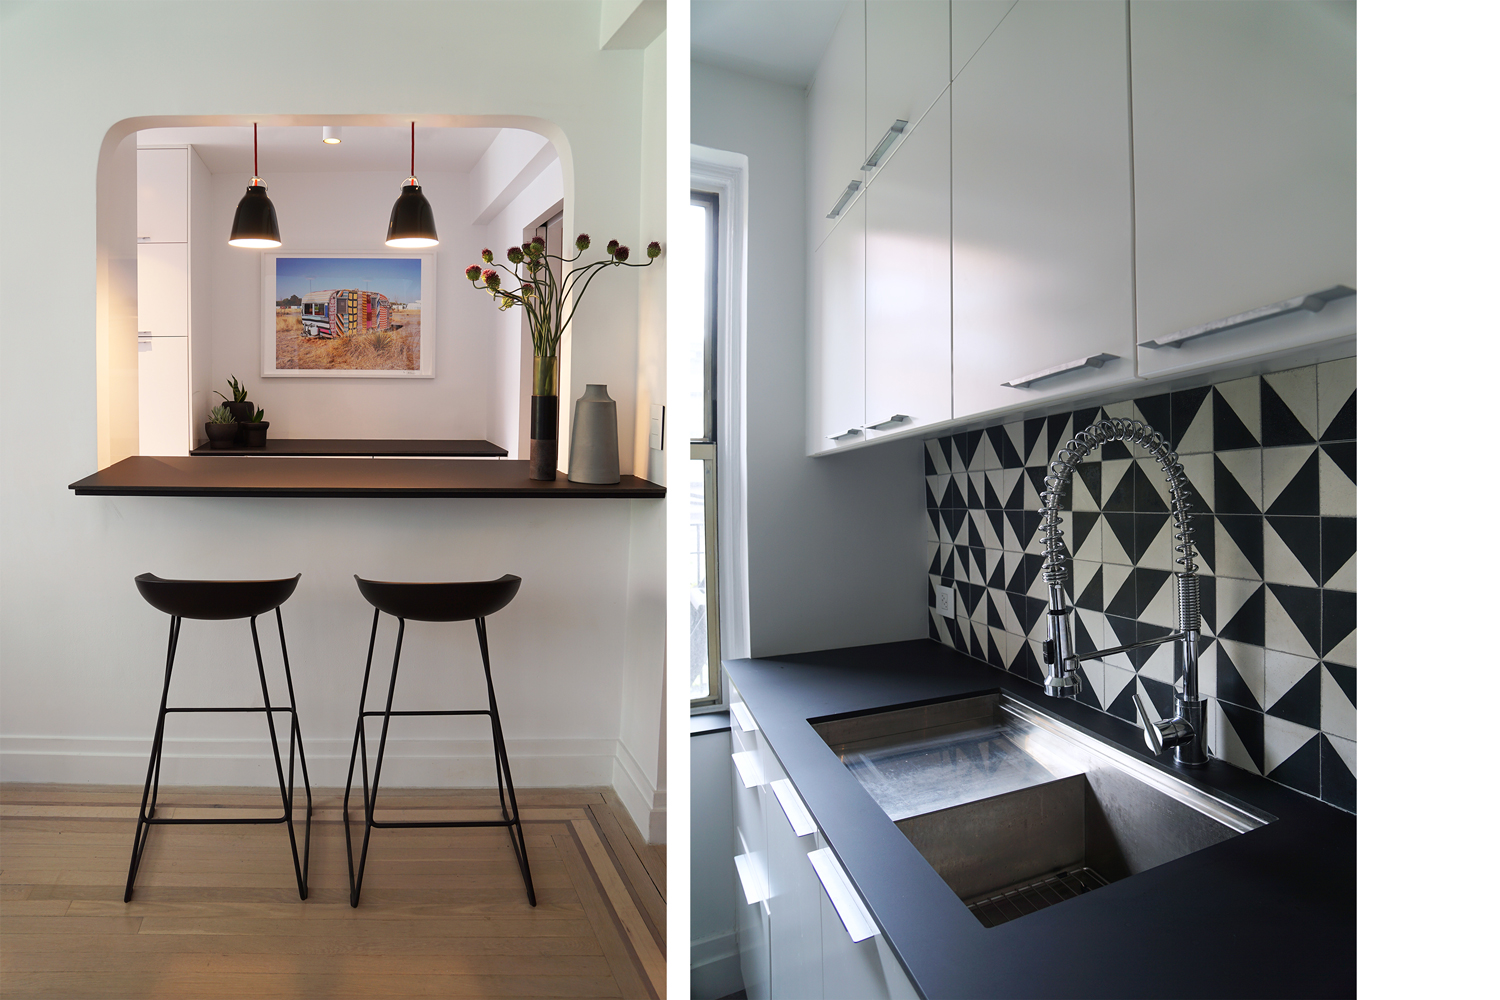 160-E-3rd-Street-Two-Images-Kitchen.jpg